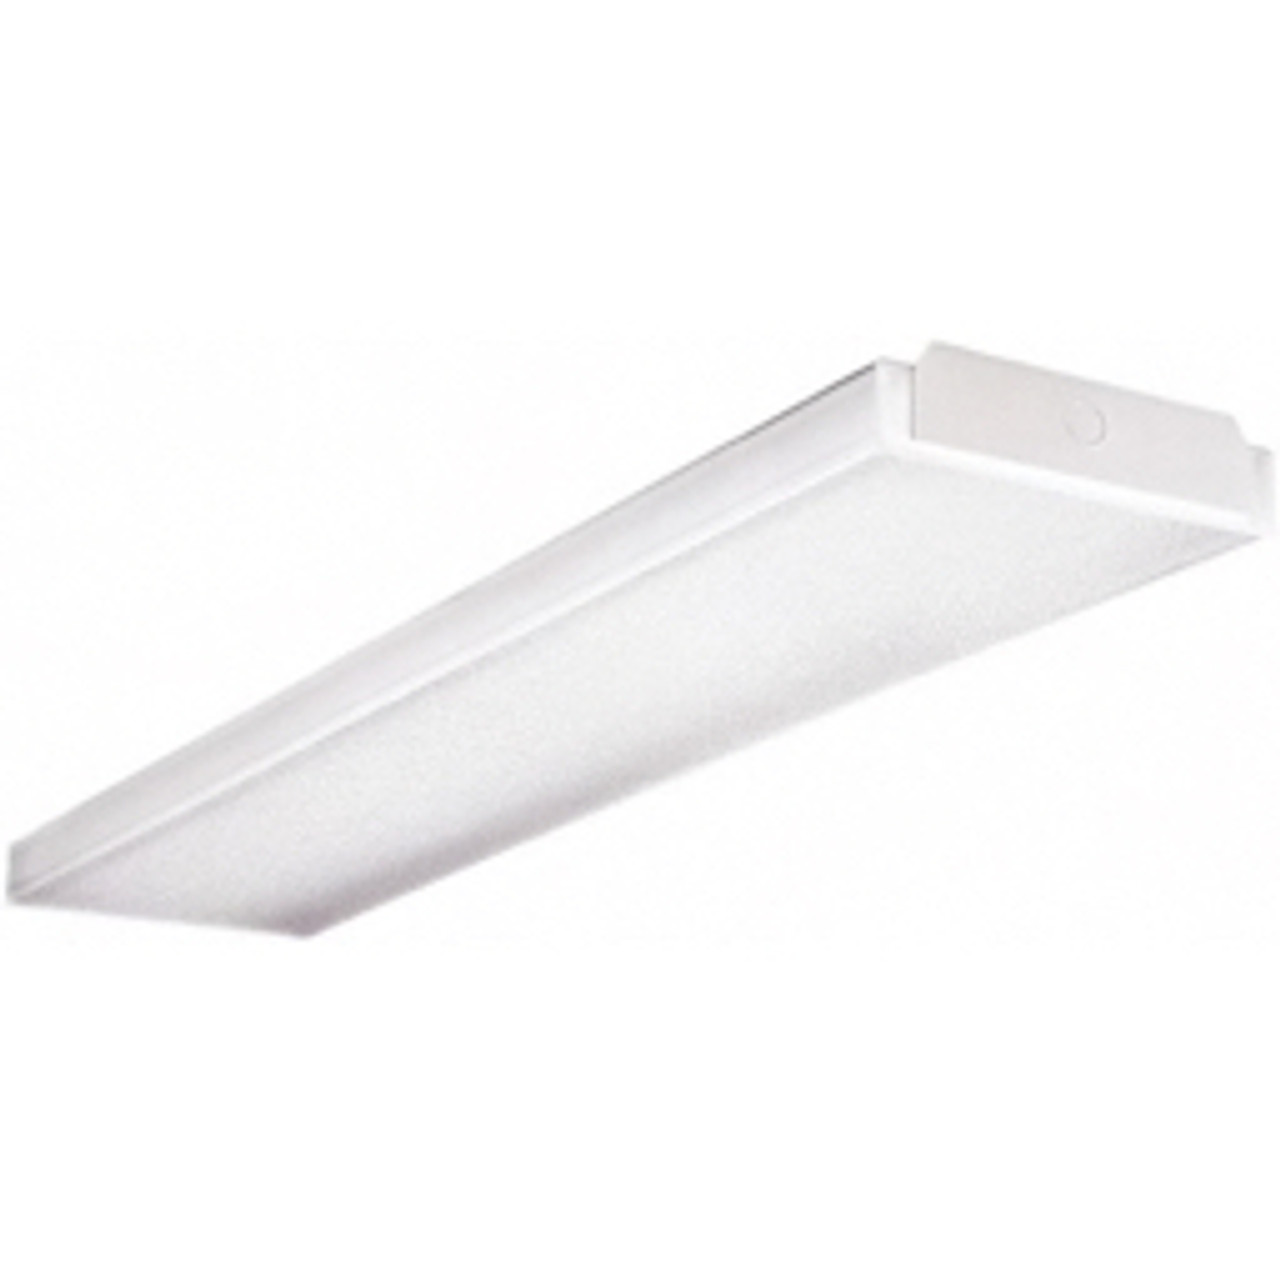 4 Ft Fluorescent Lamp Wraparound Light Fixture Surface Mounted Long 32 Watt 2 Lamp Cooper Lighting